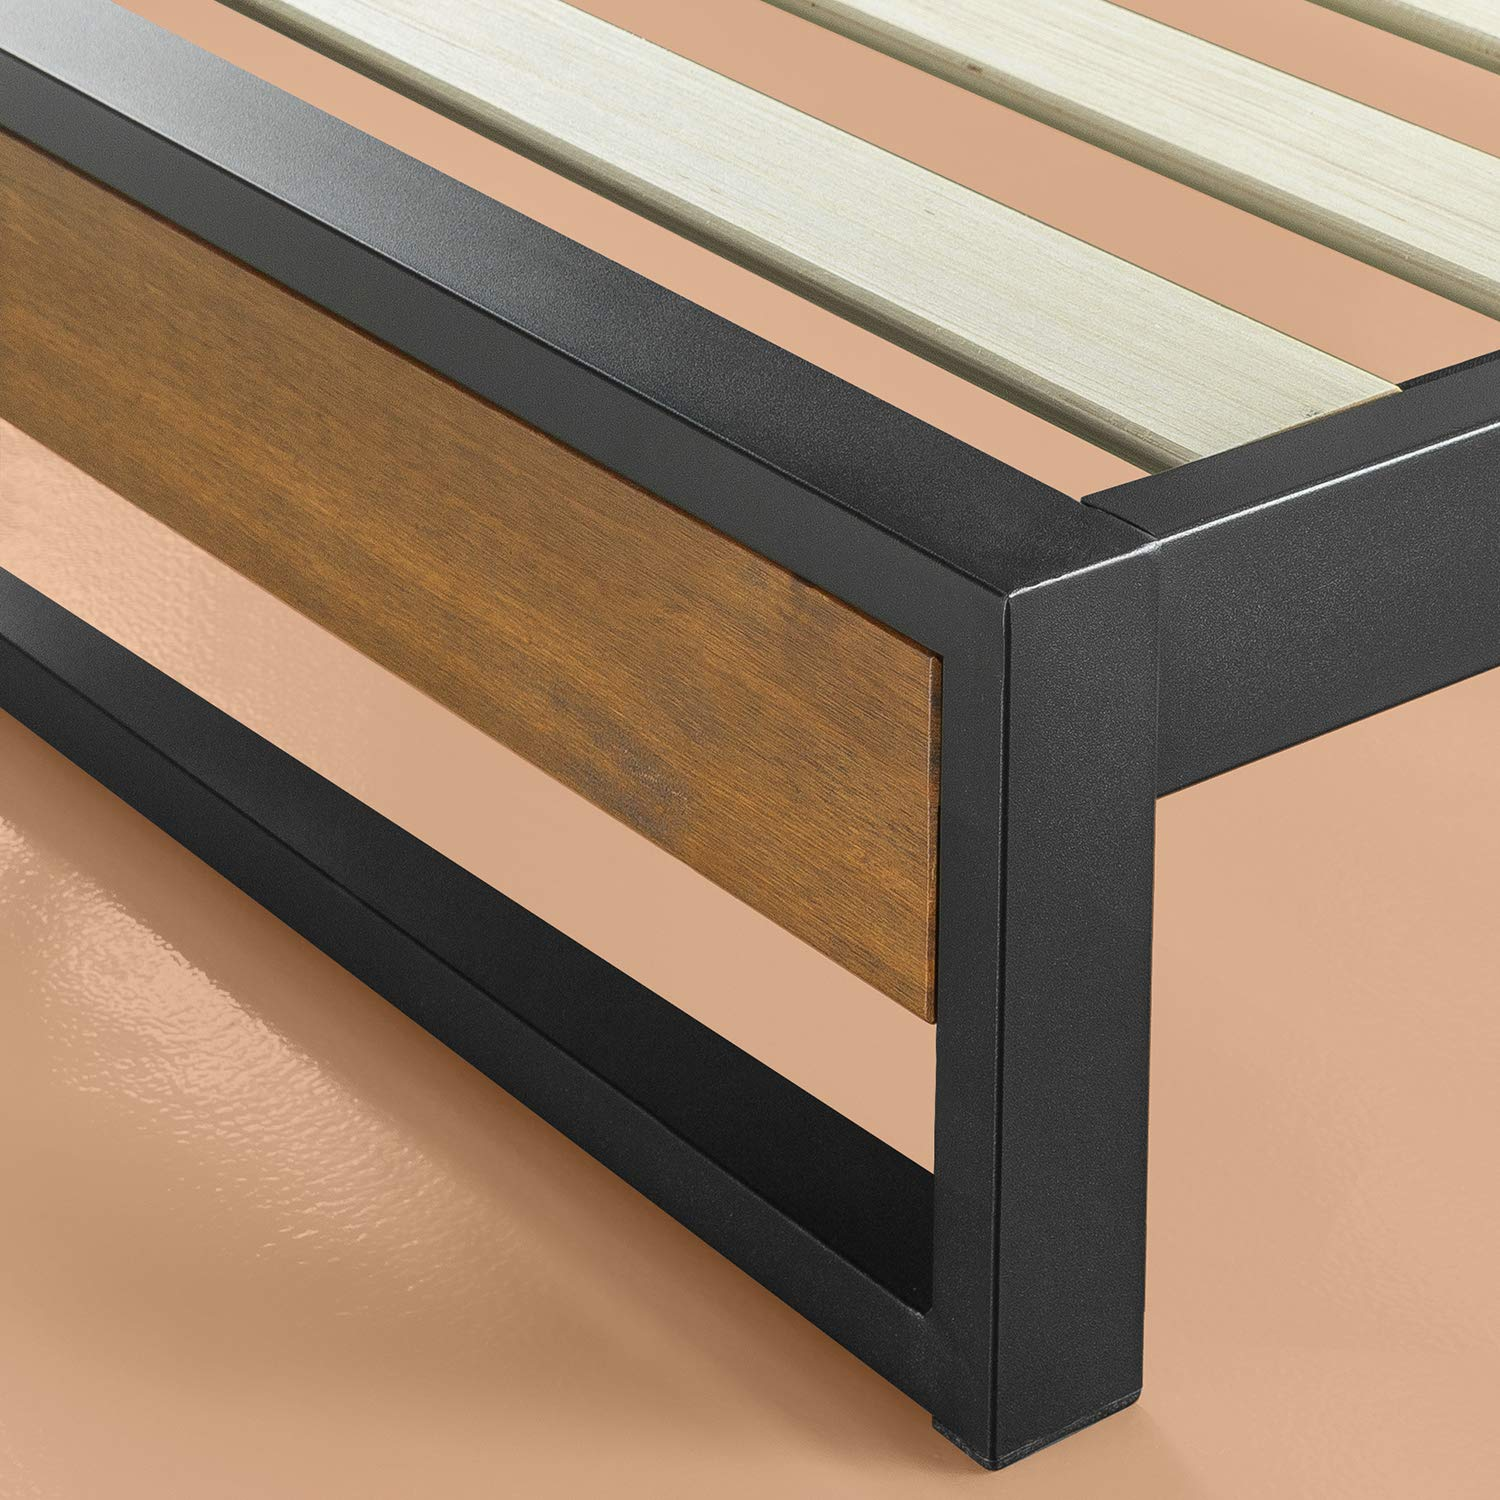 Zinus-Industrial-Metal-Wood-Bed-Frame-Single-Double-Queen-King-Low-Base-Mattress thumbnail 10